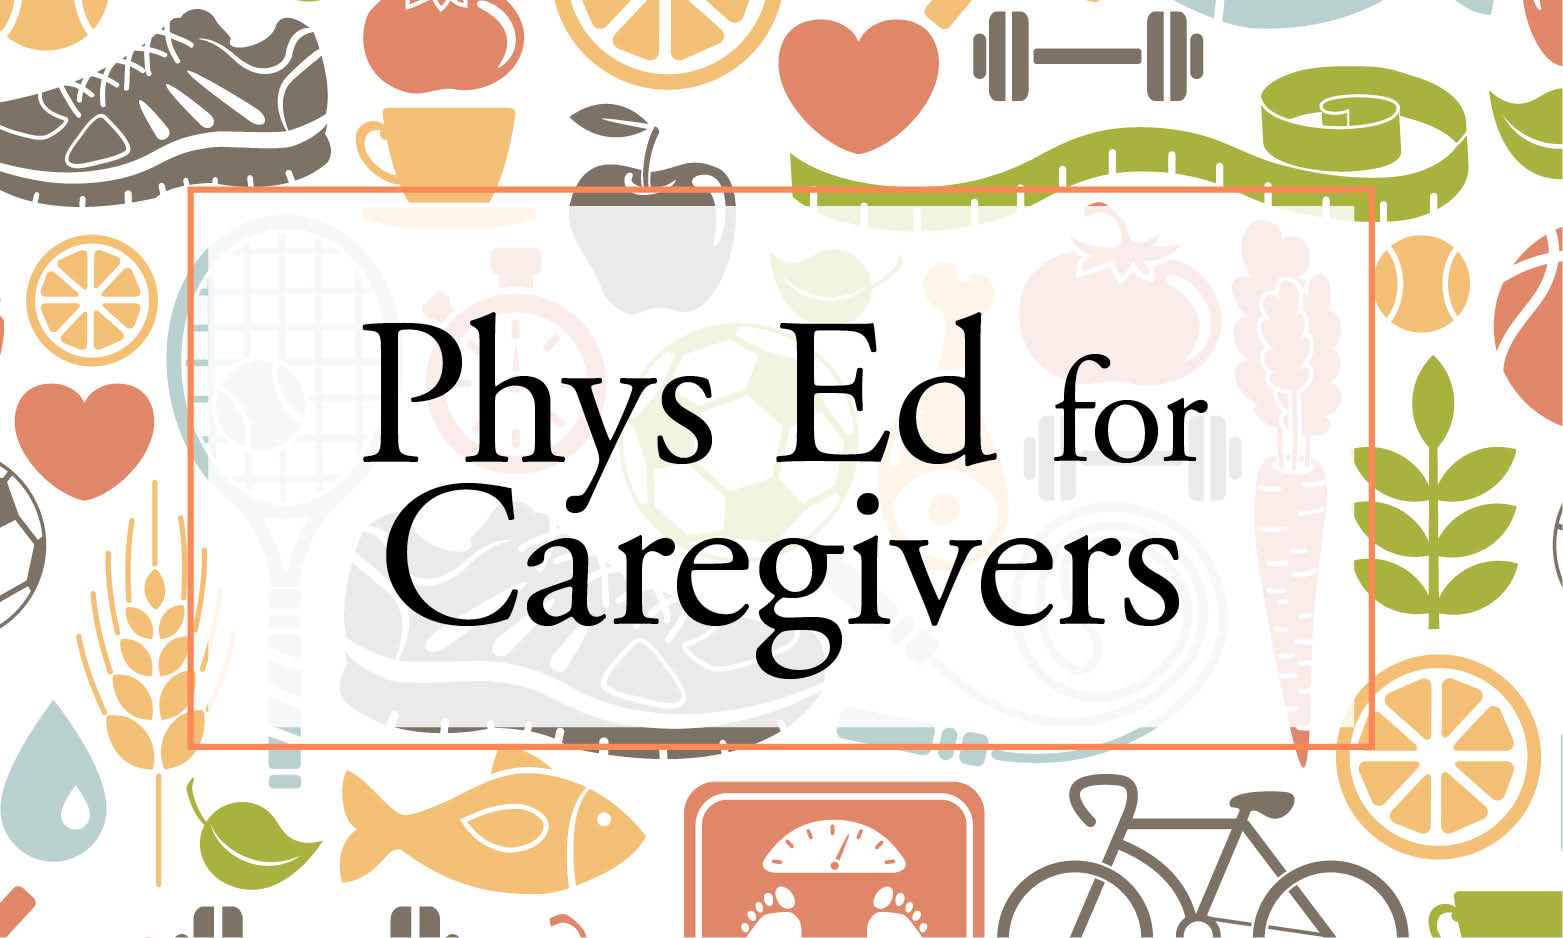 phys ed for caregivers: realistic fitness tips